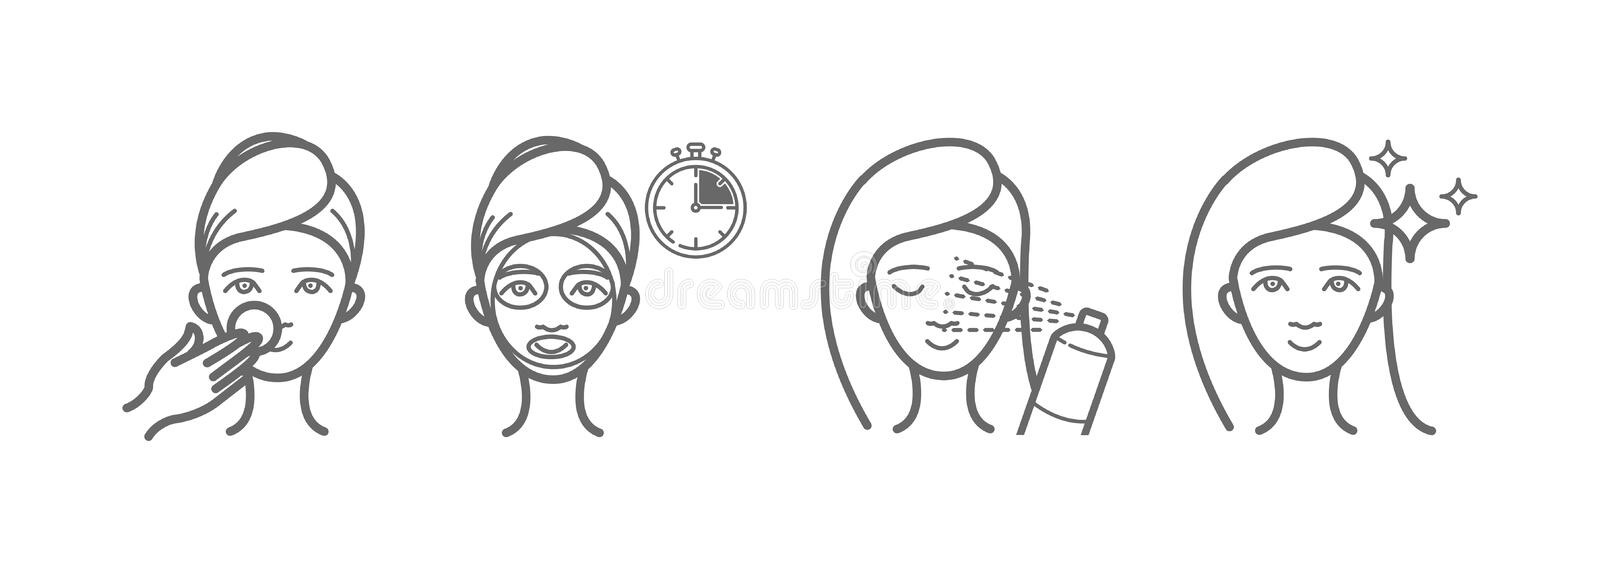 Beauty treatment icons set, face mask, spray. For your design royalty free illustration